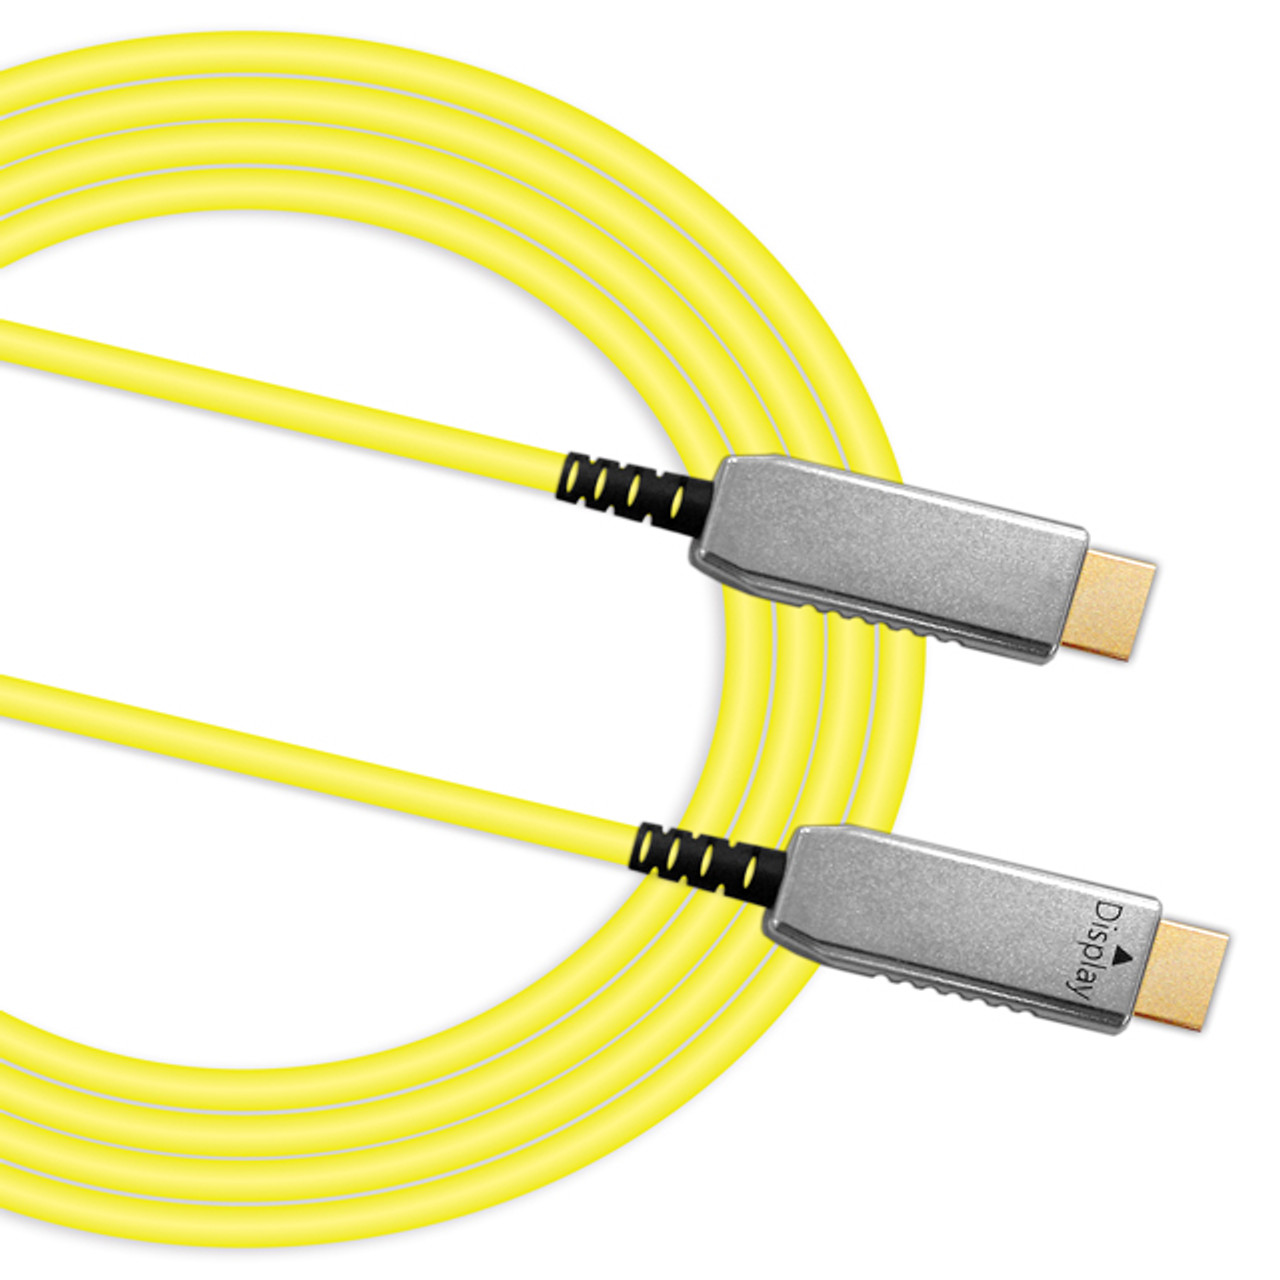 Product image for 40M Fibre Optic Hybrid HDMI Cable | CX Computer Superstore